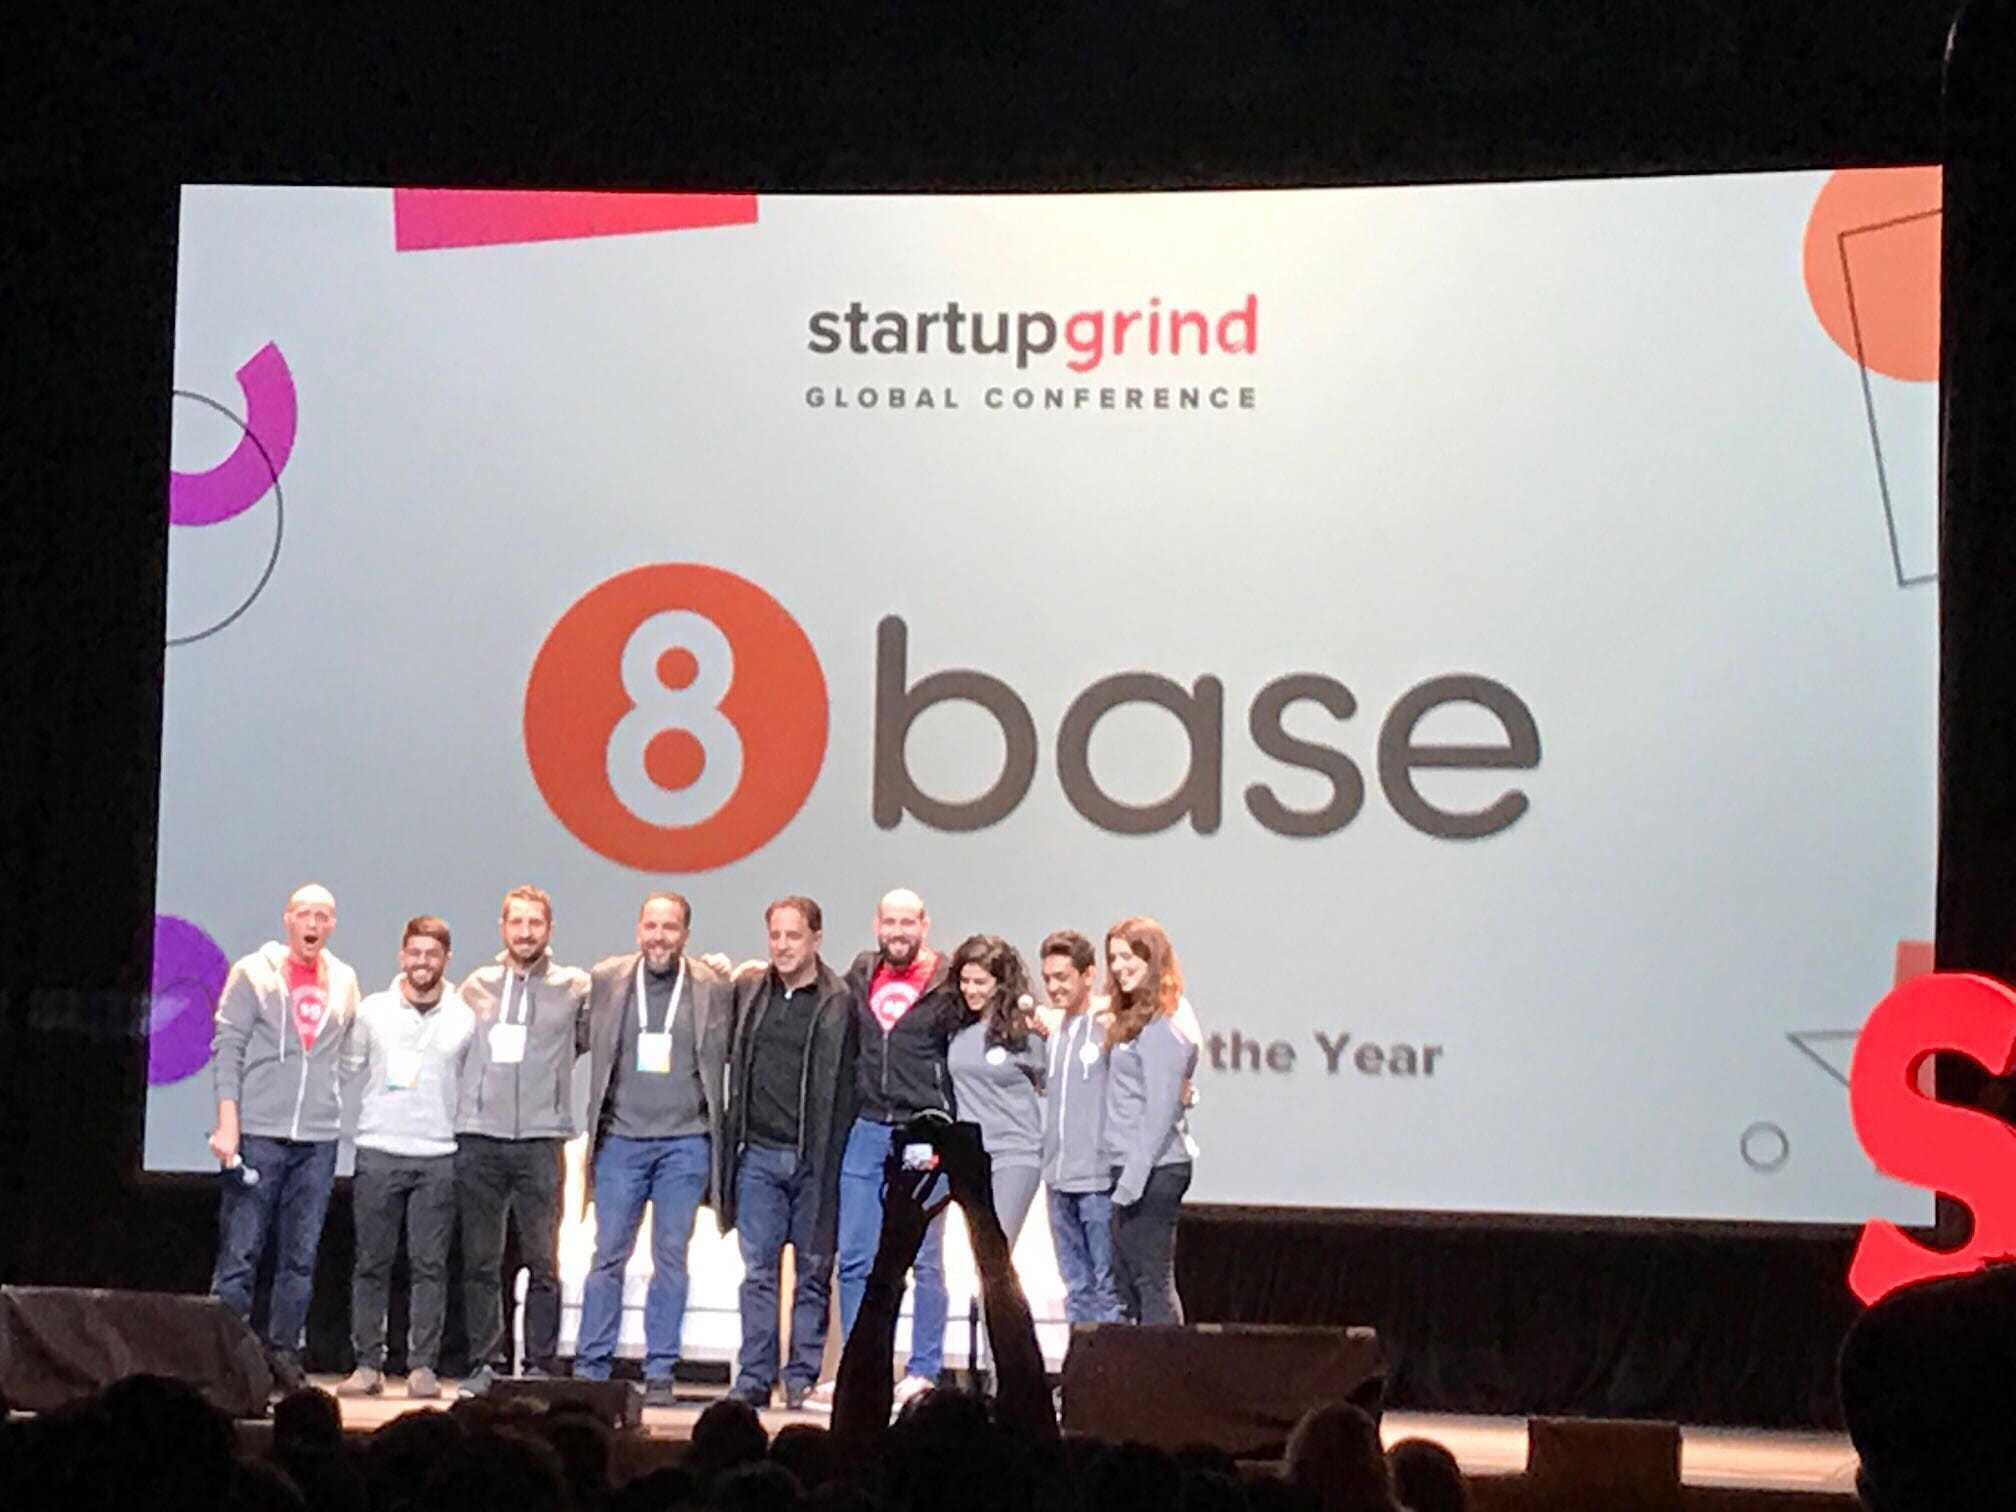 5 things to know in #MiamiTech: 8base wins big and